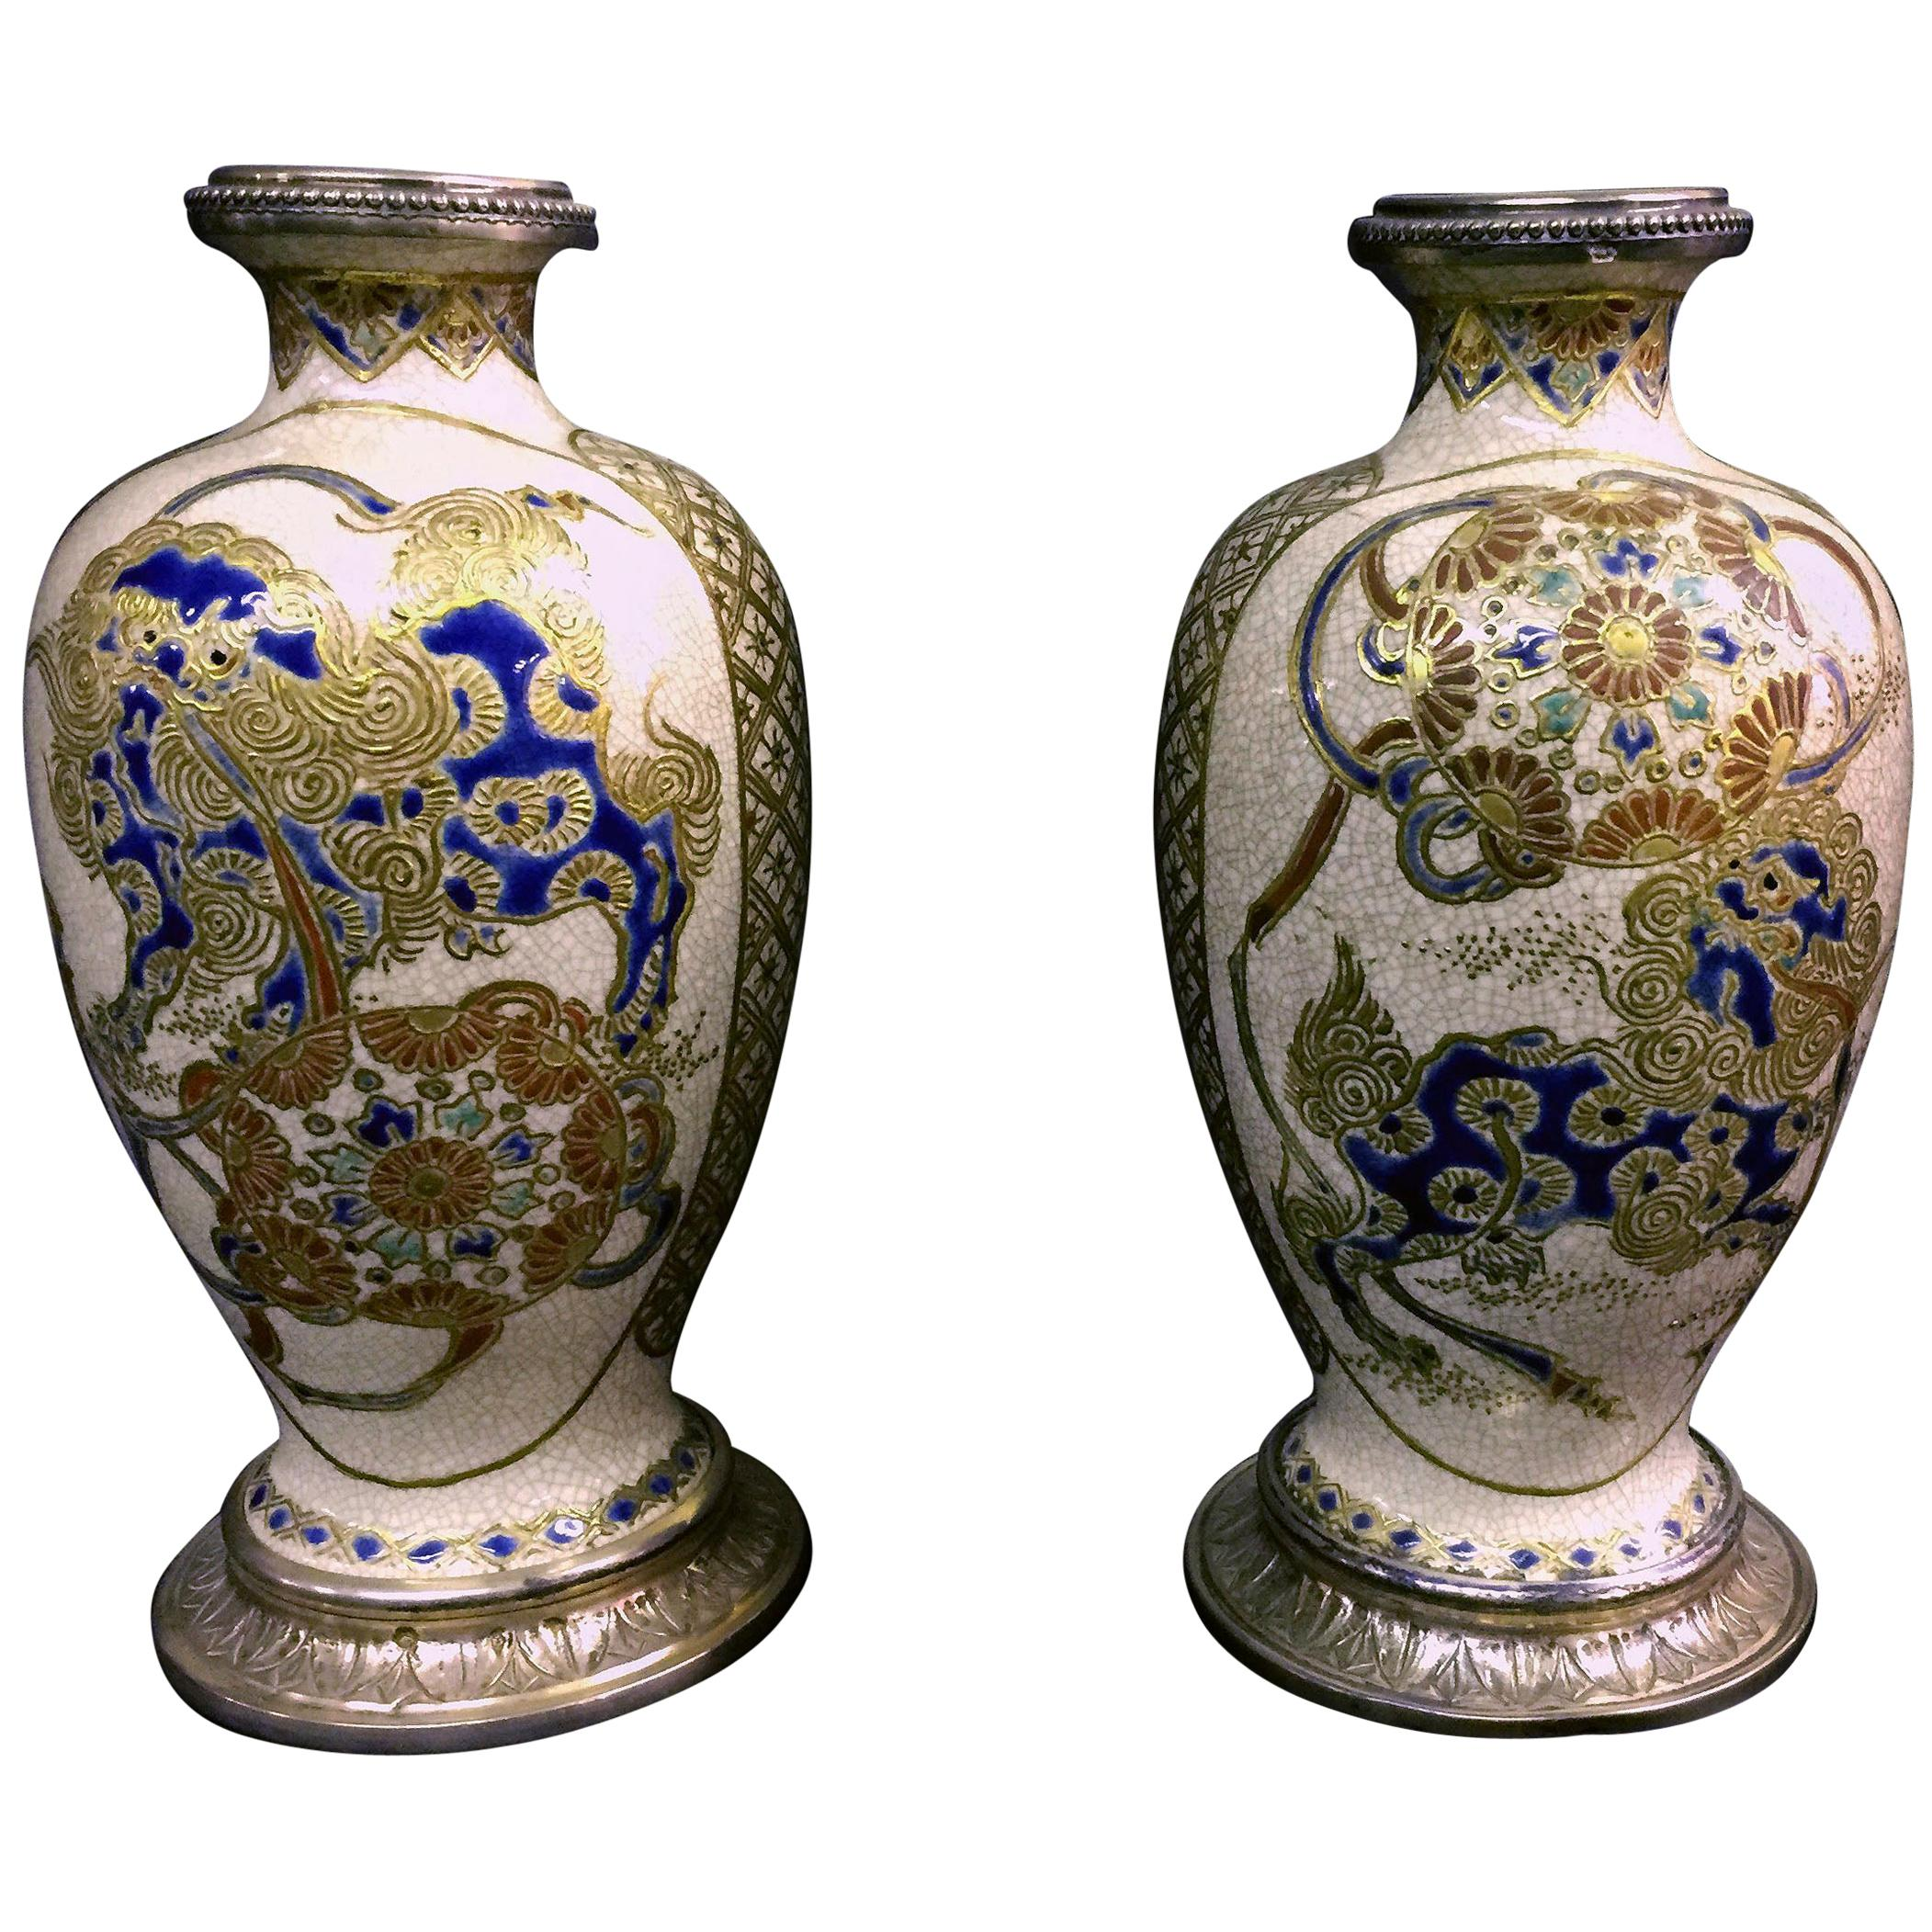 Nice Pair of Late 19th Century Silver Mounted Japanese Satsuma Porcelain Vases